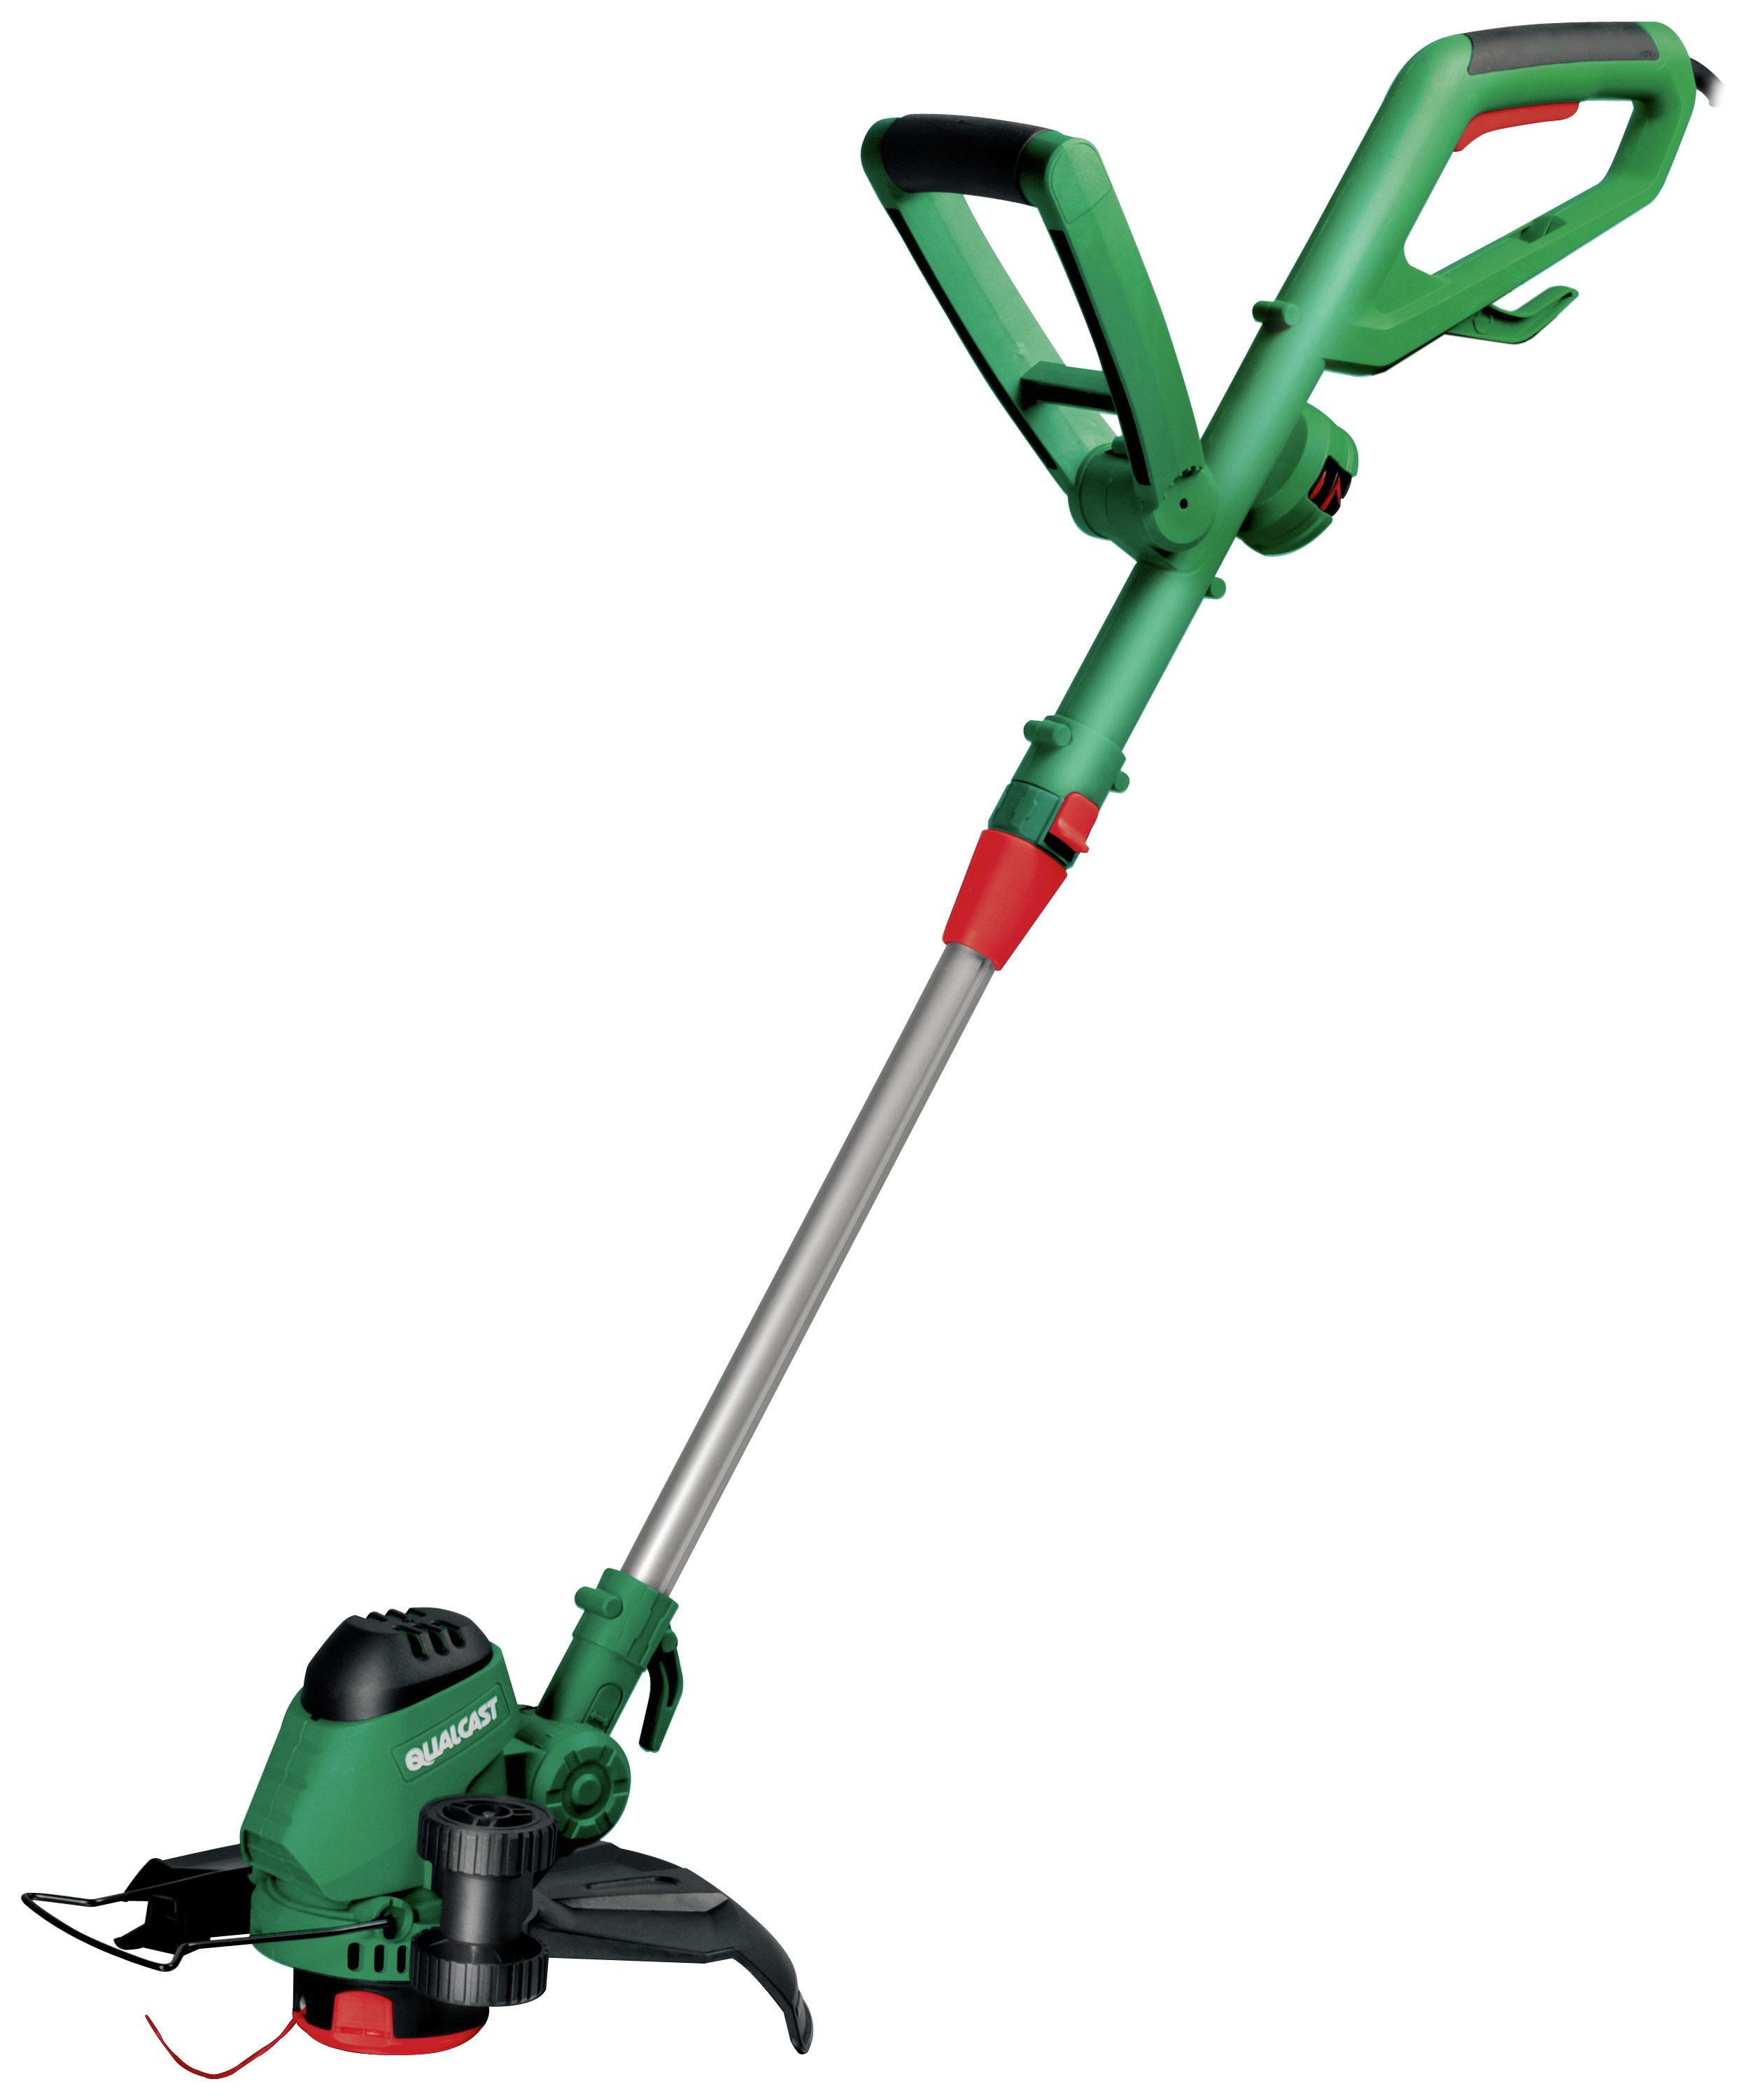 Qualcast - Corded Grass Trimmer - 450W lowest price